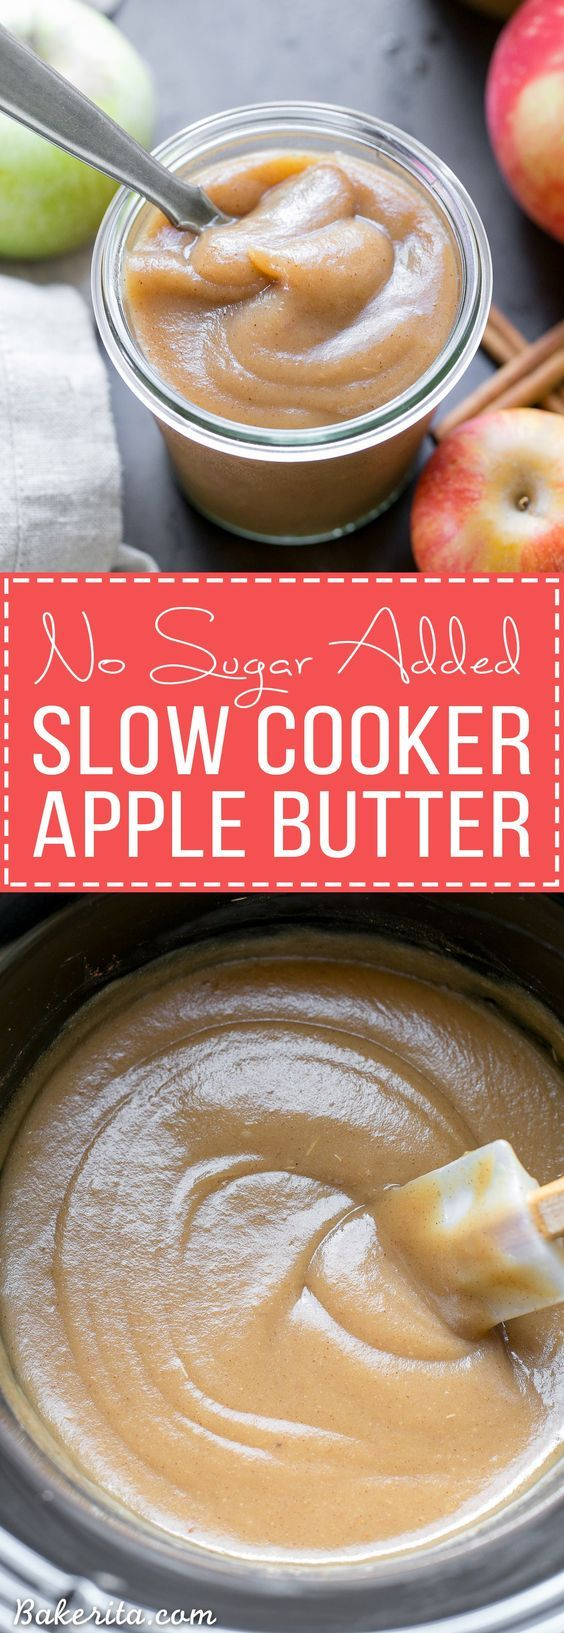 This Slow Cooker Apple Butter has no sugar added - just fresh apples ...